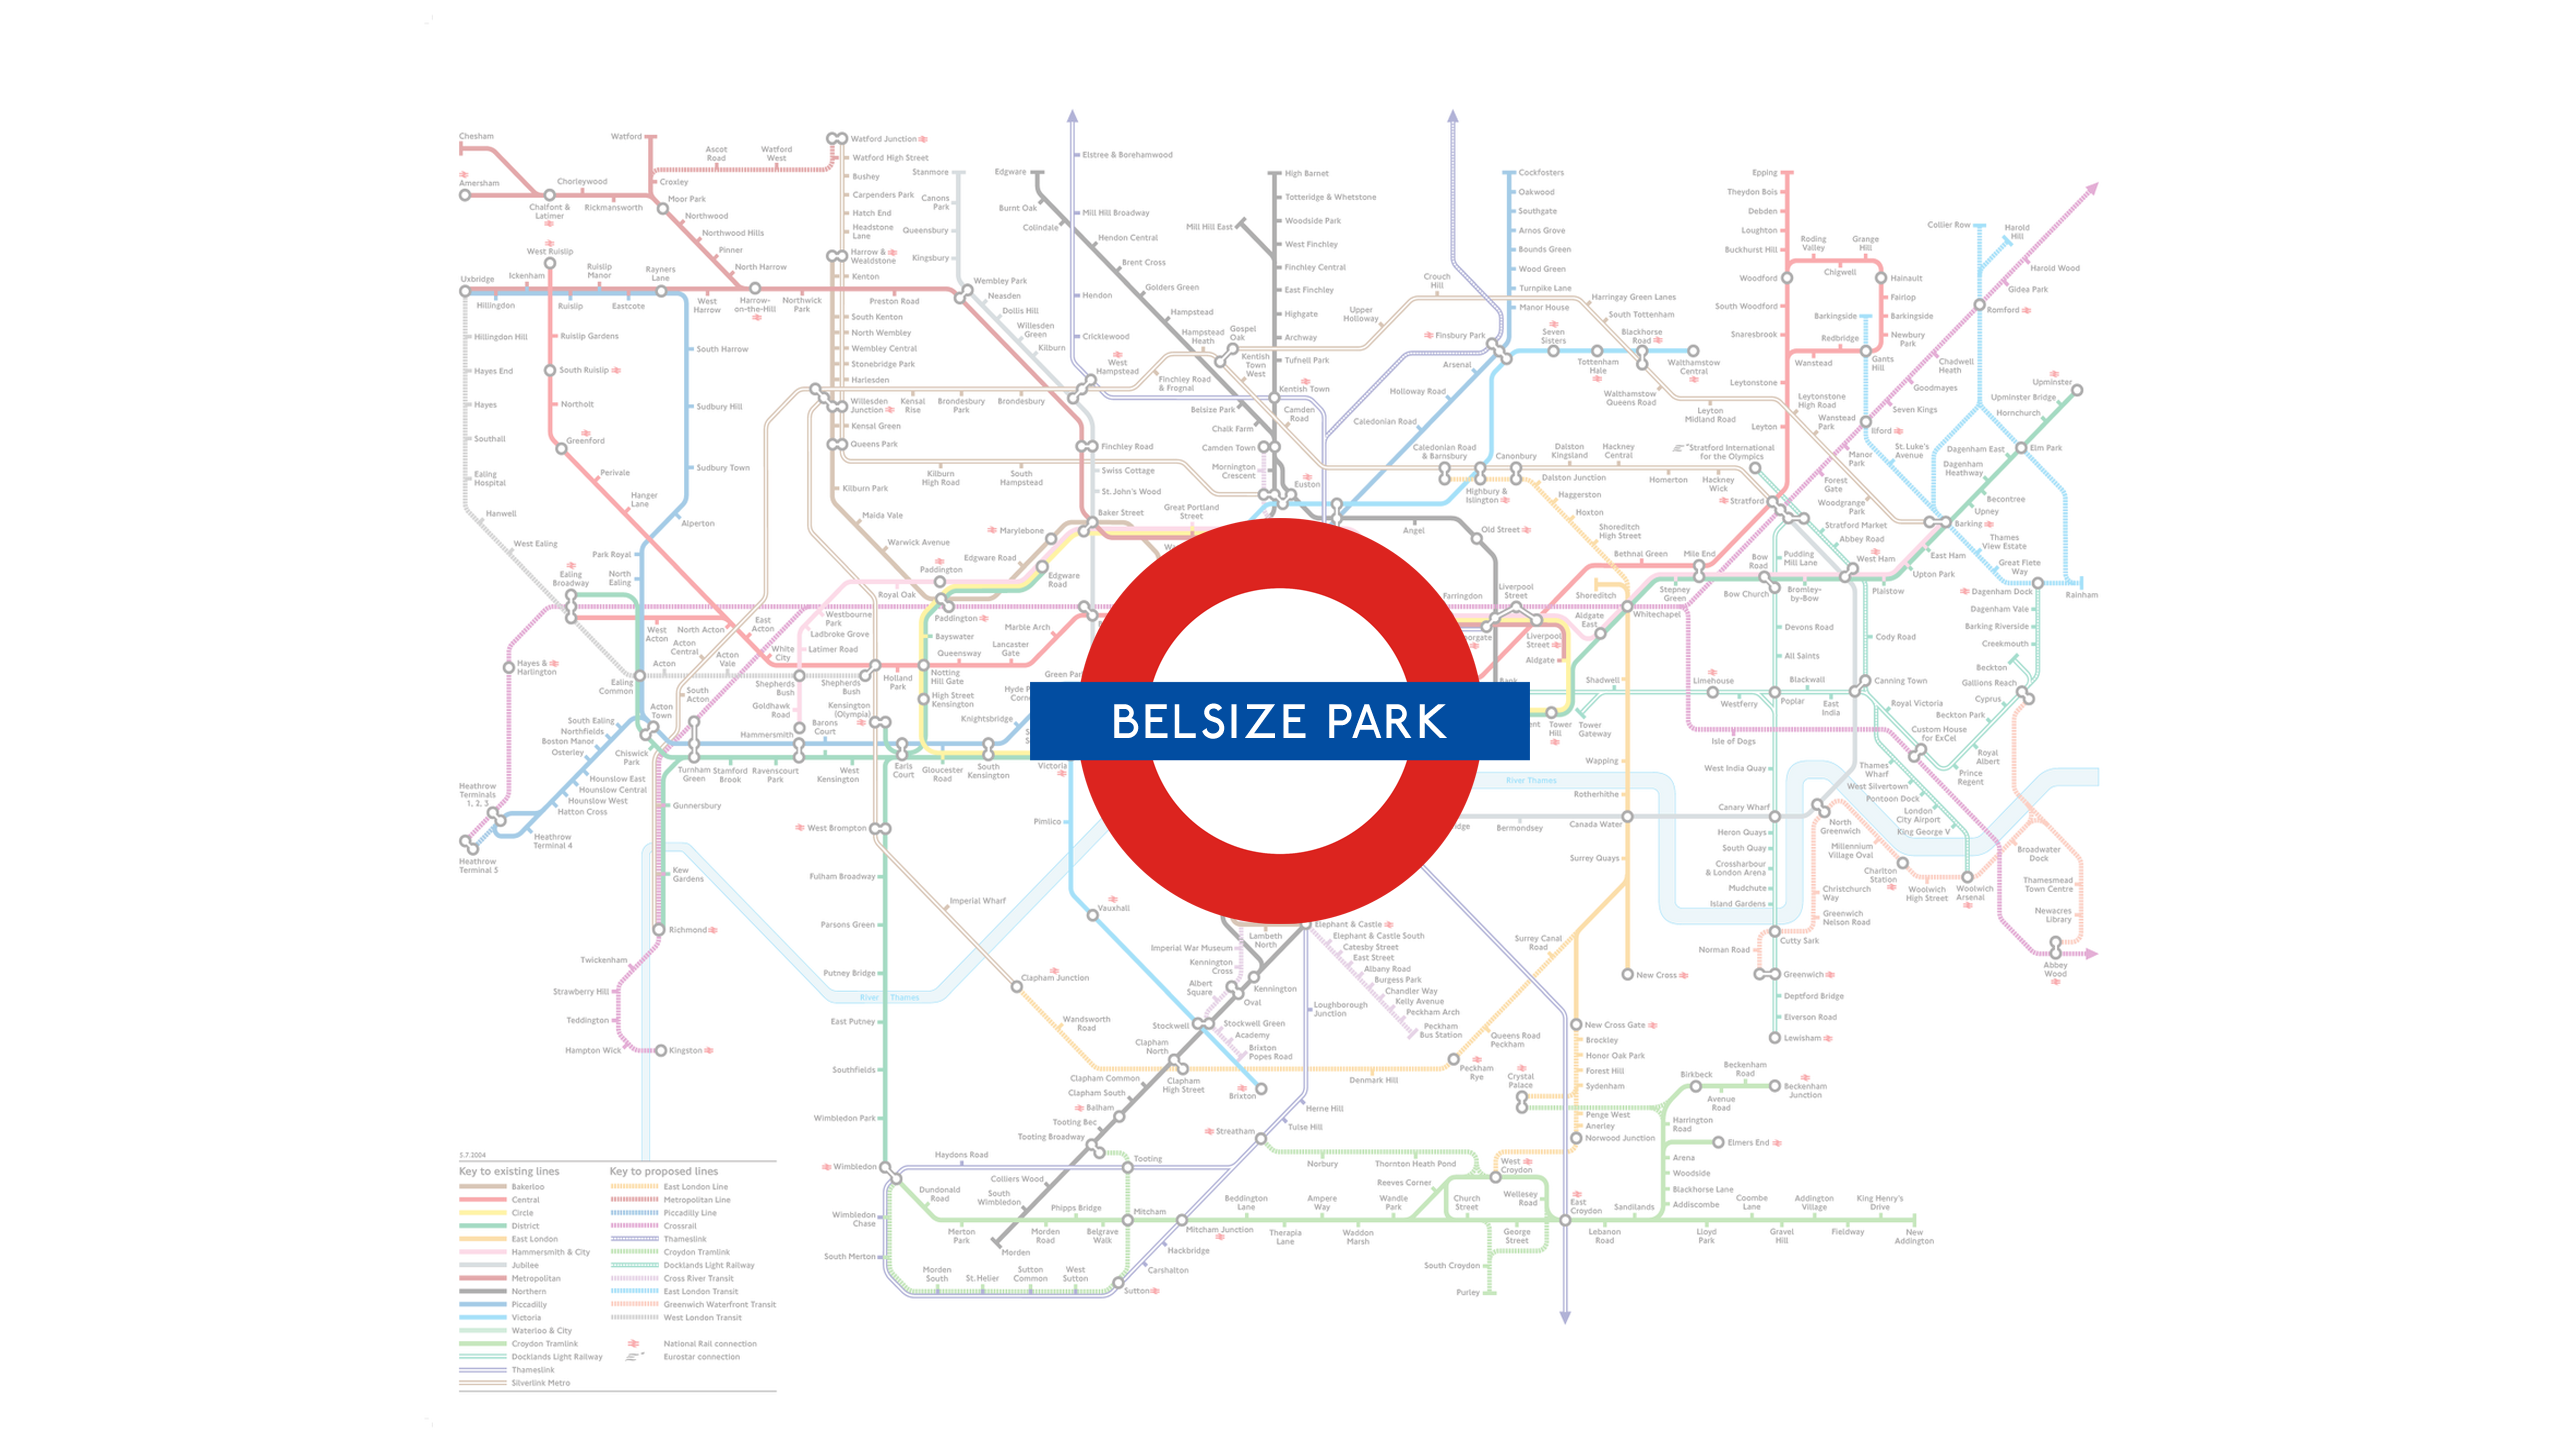 Belsize Park (Map)